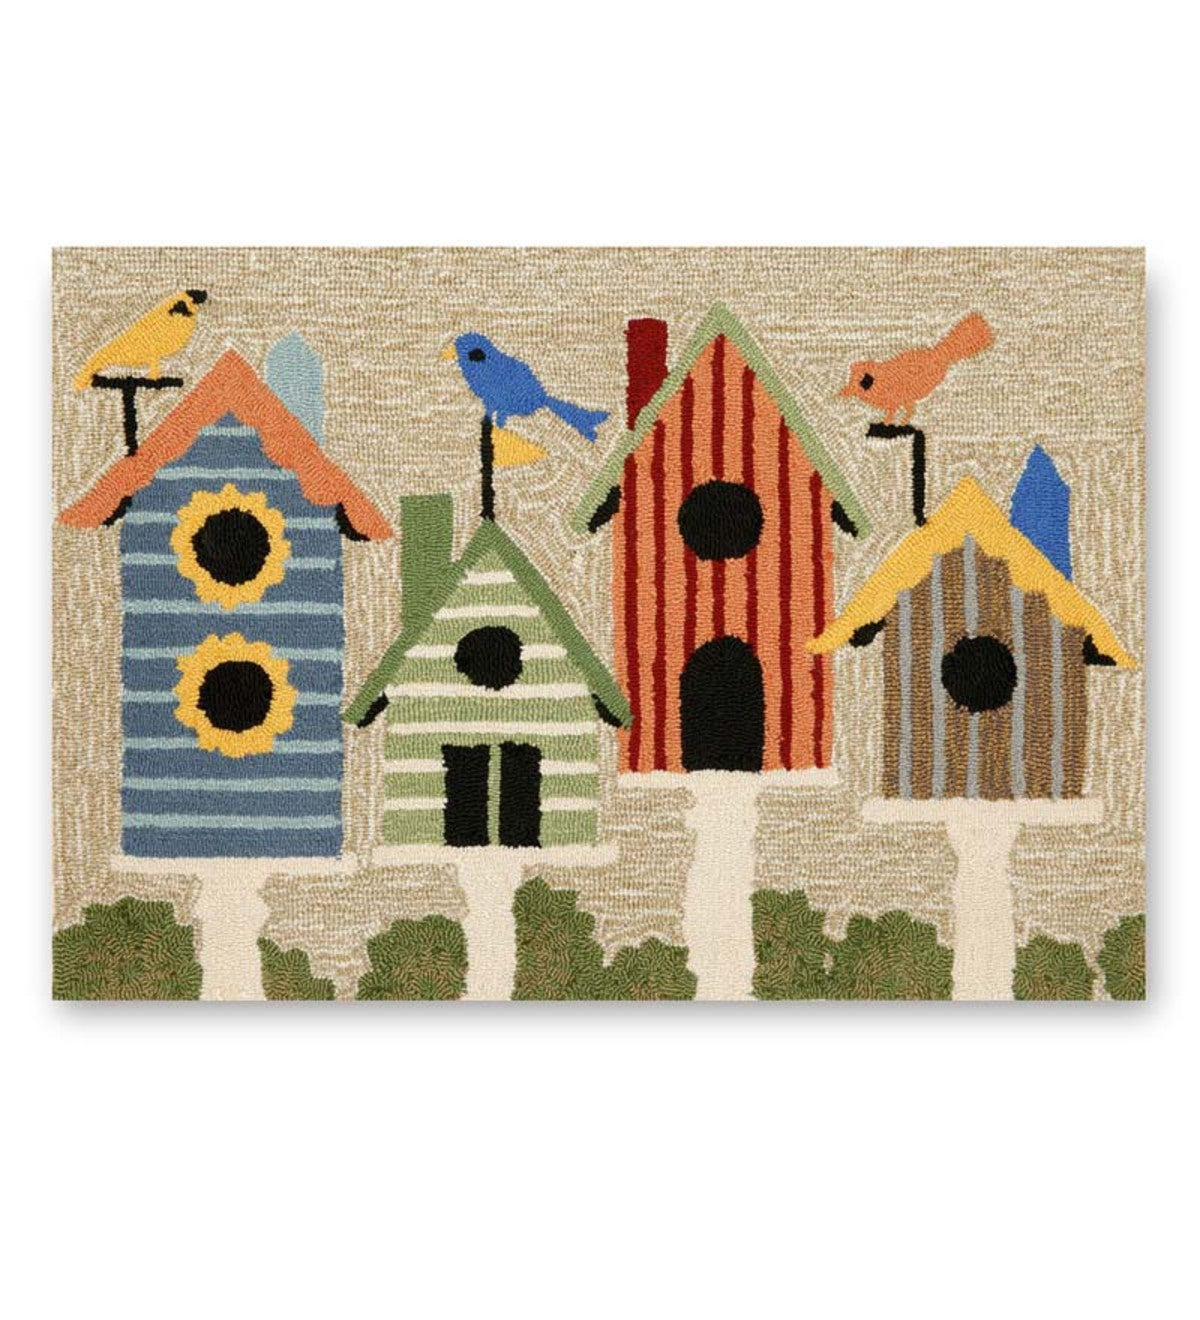 Birdhouse Indoor/Outdoor Accent Rug 20